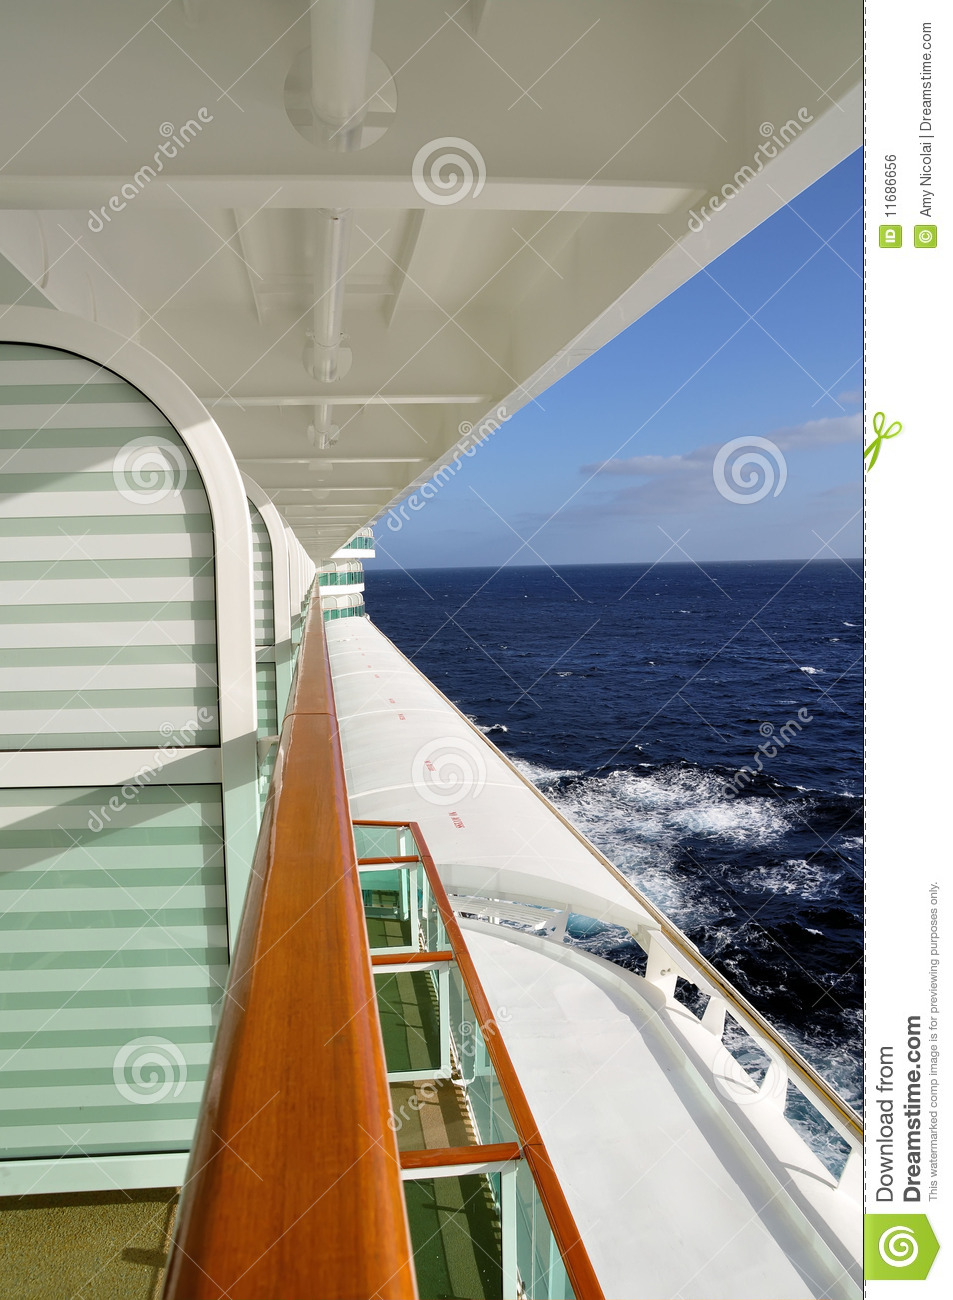 Cruise ship view from the balcony royalty free stock image for Cruise balcony